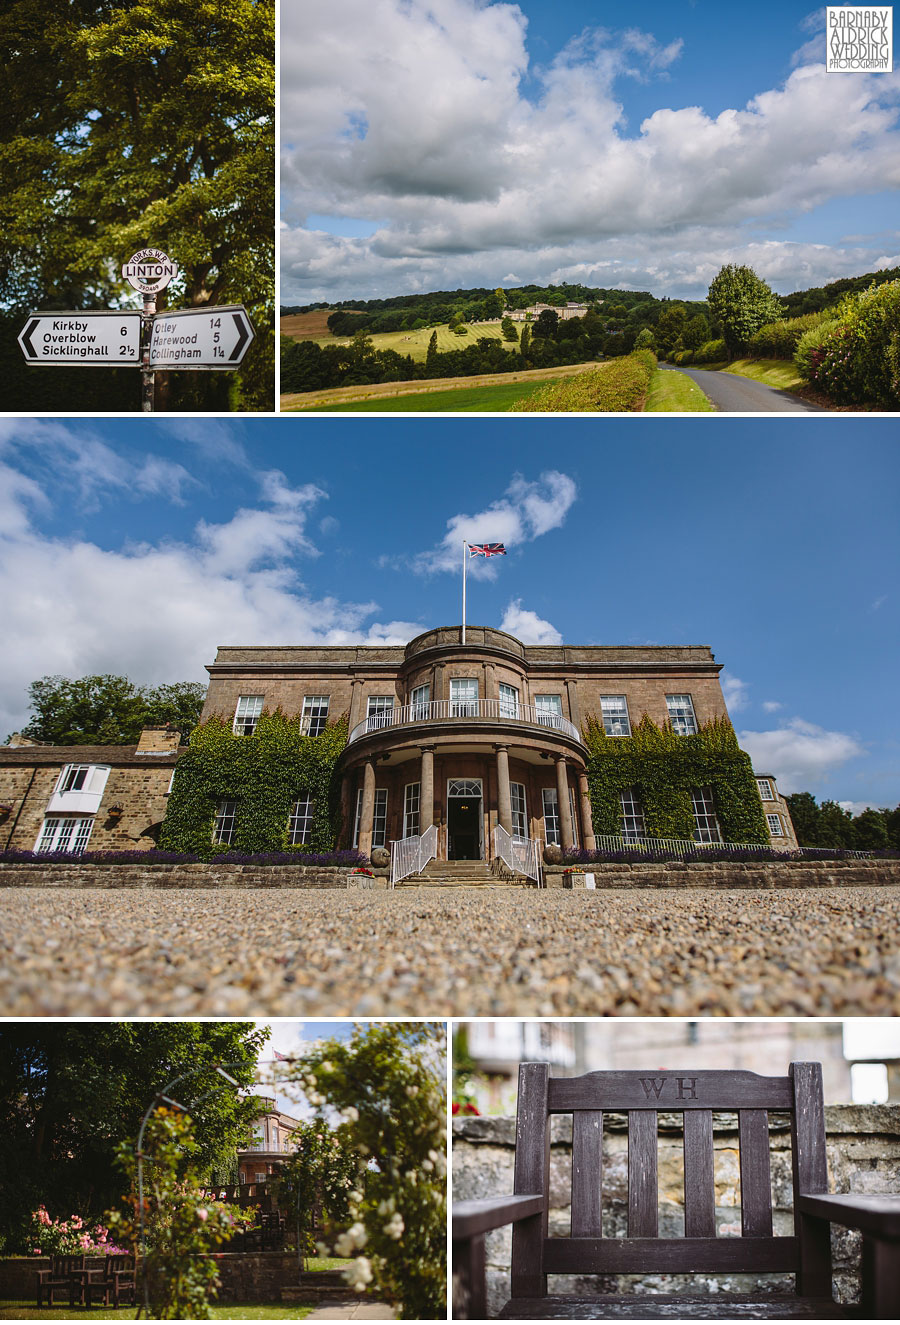 Wood Hall Linton Wetherby Wedding Photography 002